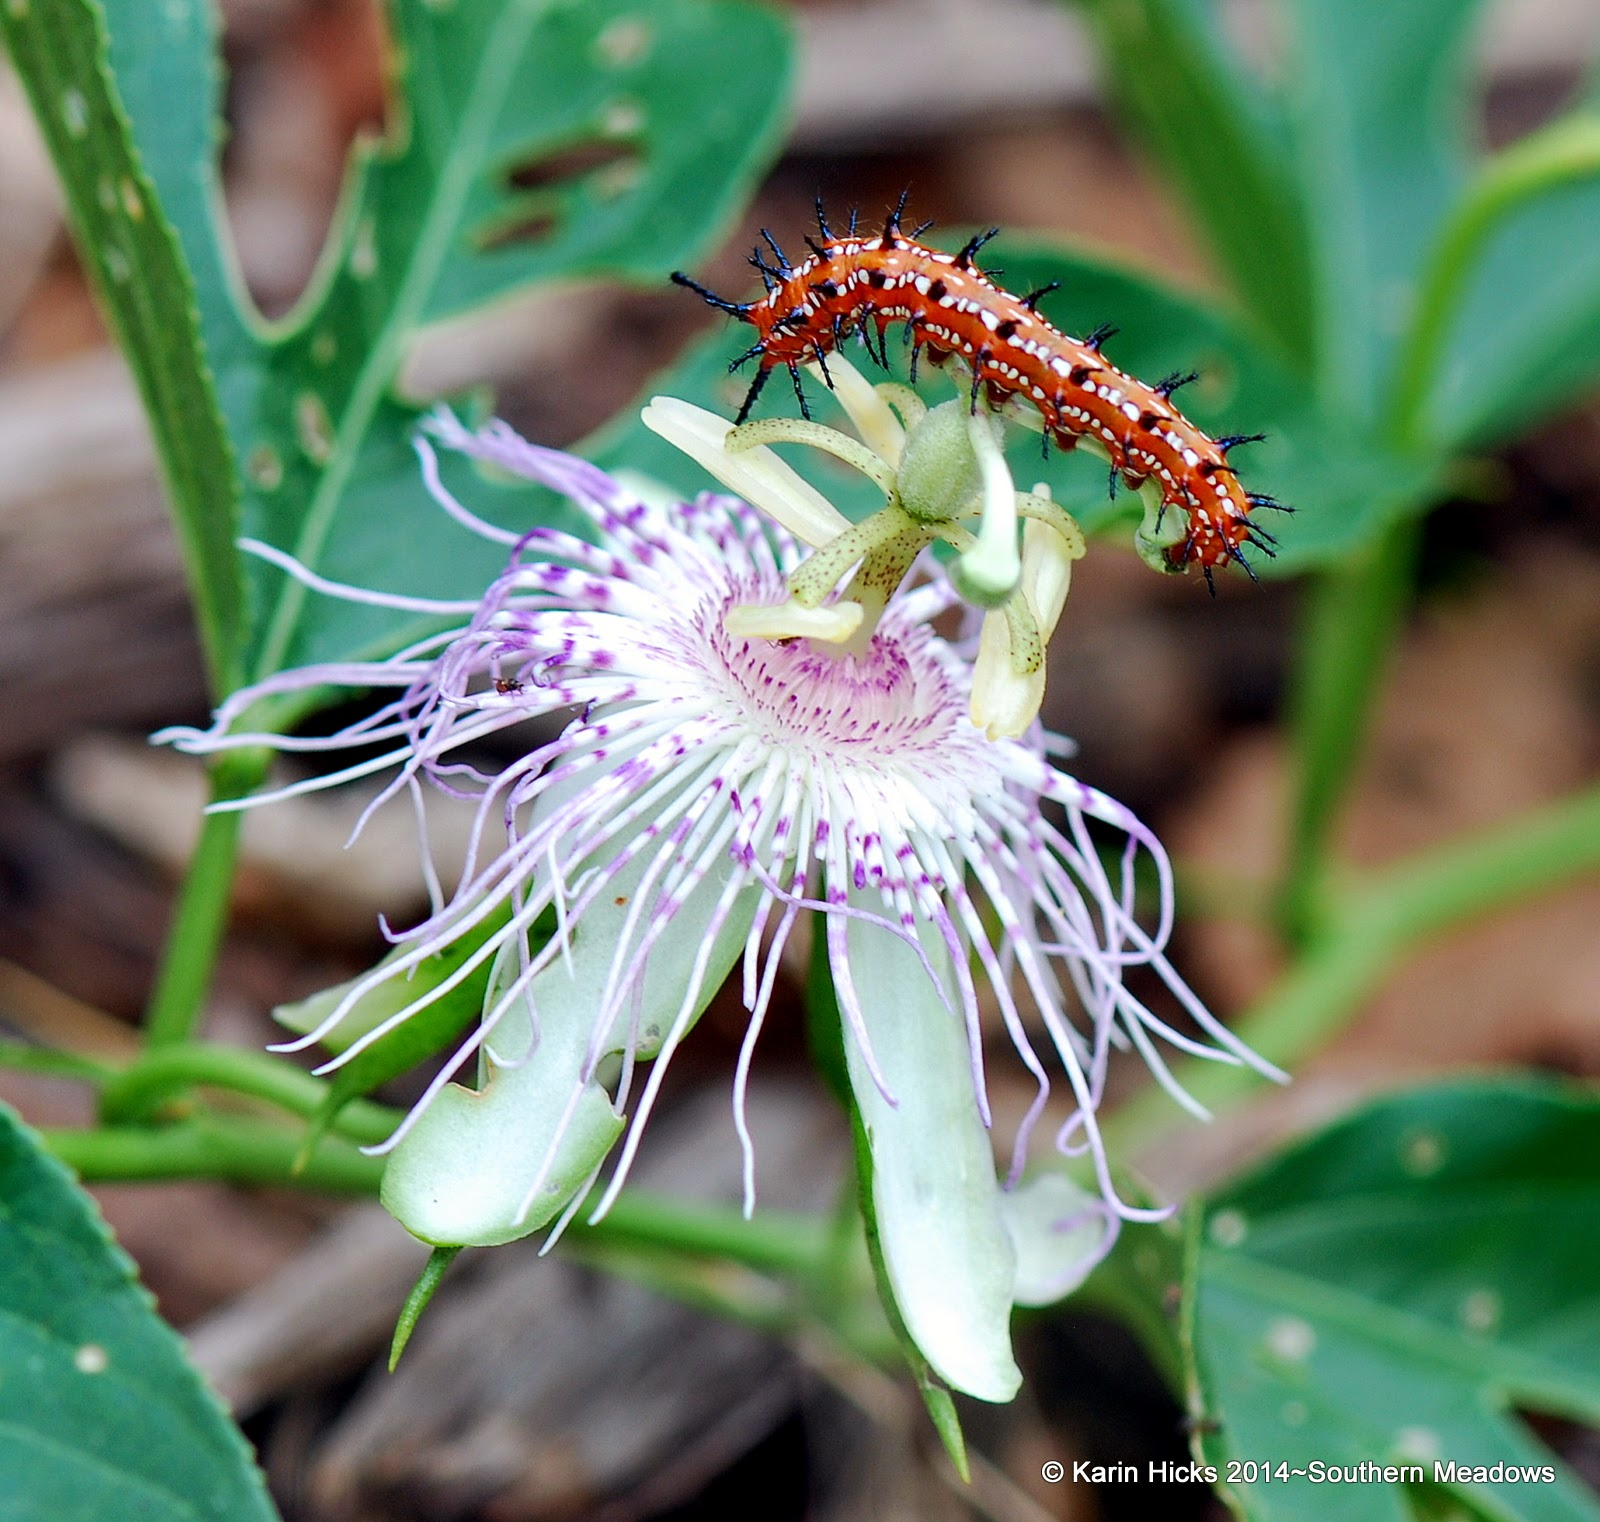 variegated fritillary caterpillar on passiflora bloom